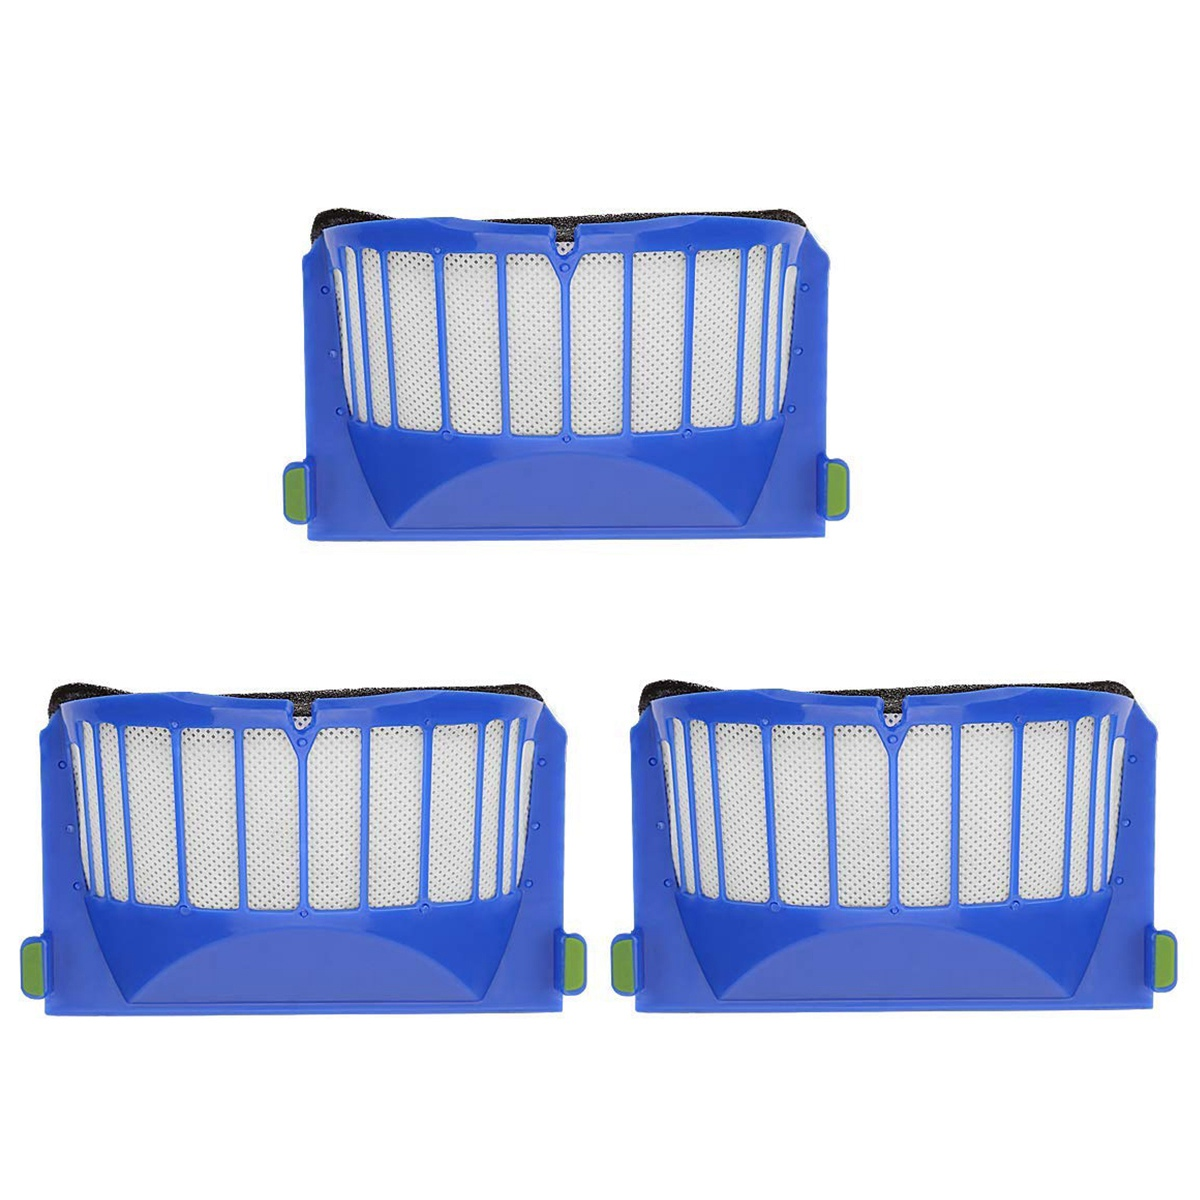 3 Pack 600 Series Replacement for Irobot Roomba 600 610 620 Serie Filters Roomba Accessori3 Pack 600 Series Replacement for Irobot Roomba 600 610 620 Serie Filters Roomba Accessori